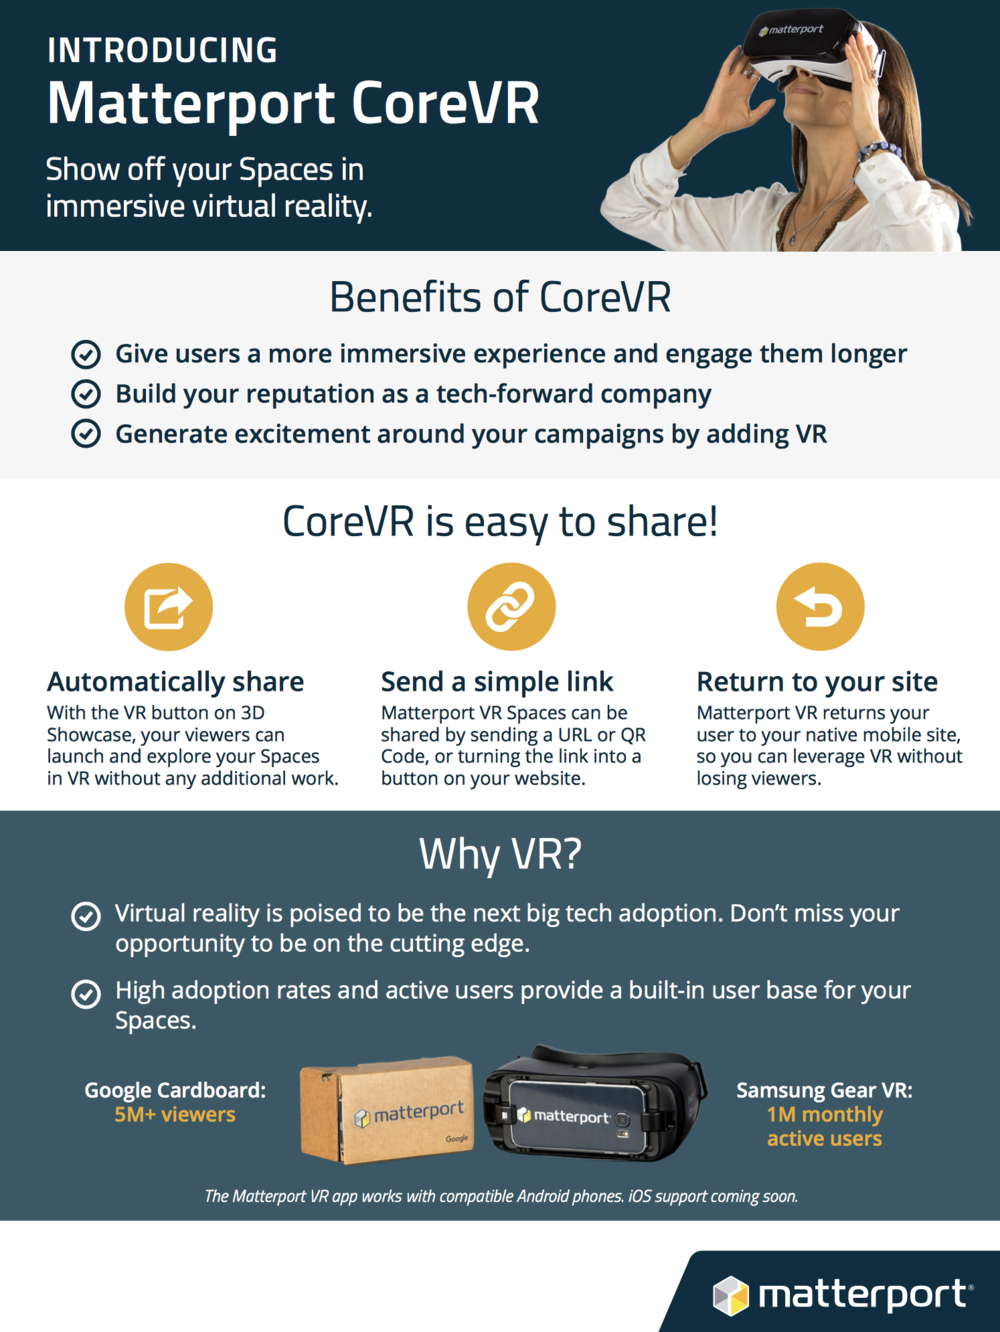 Show Off With Virtual Reality - Virtual reality is poised to be the next big tech adoption. Don't miss your opportunity to be on the cutting edge. Click the image to the left to download this Matterport CoreVR info sheet.